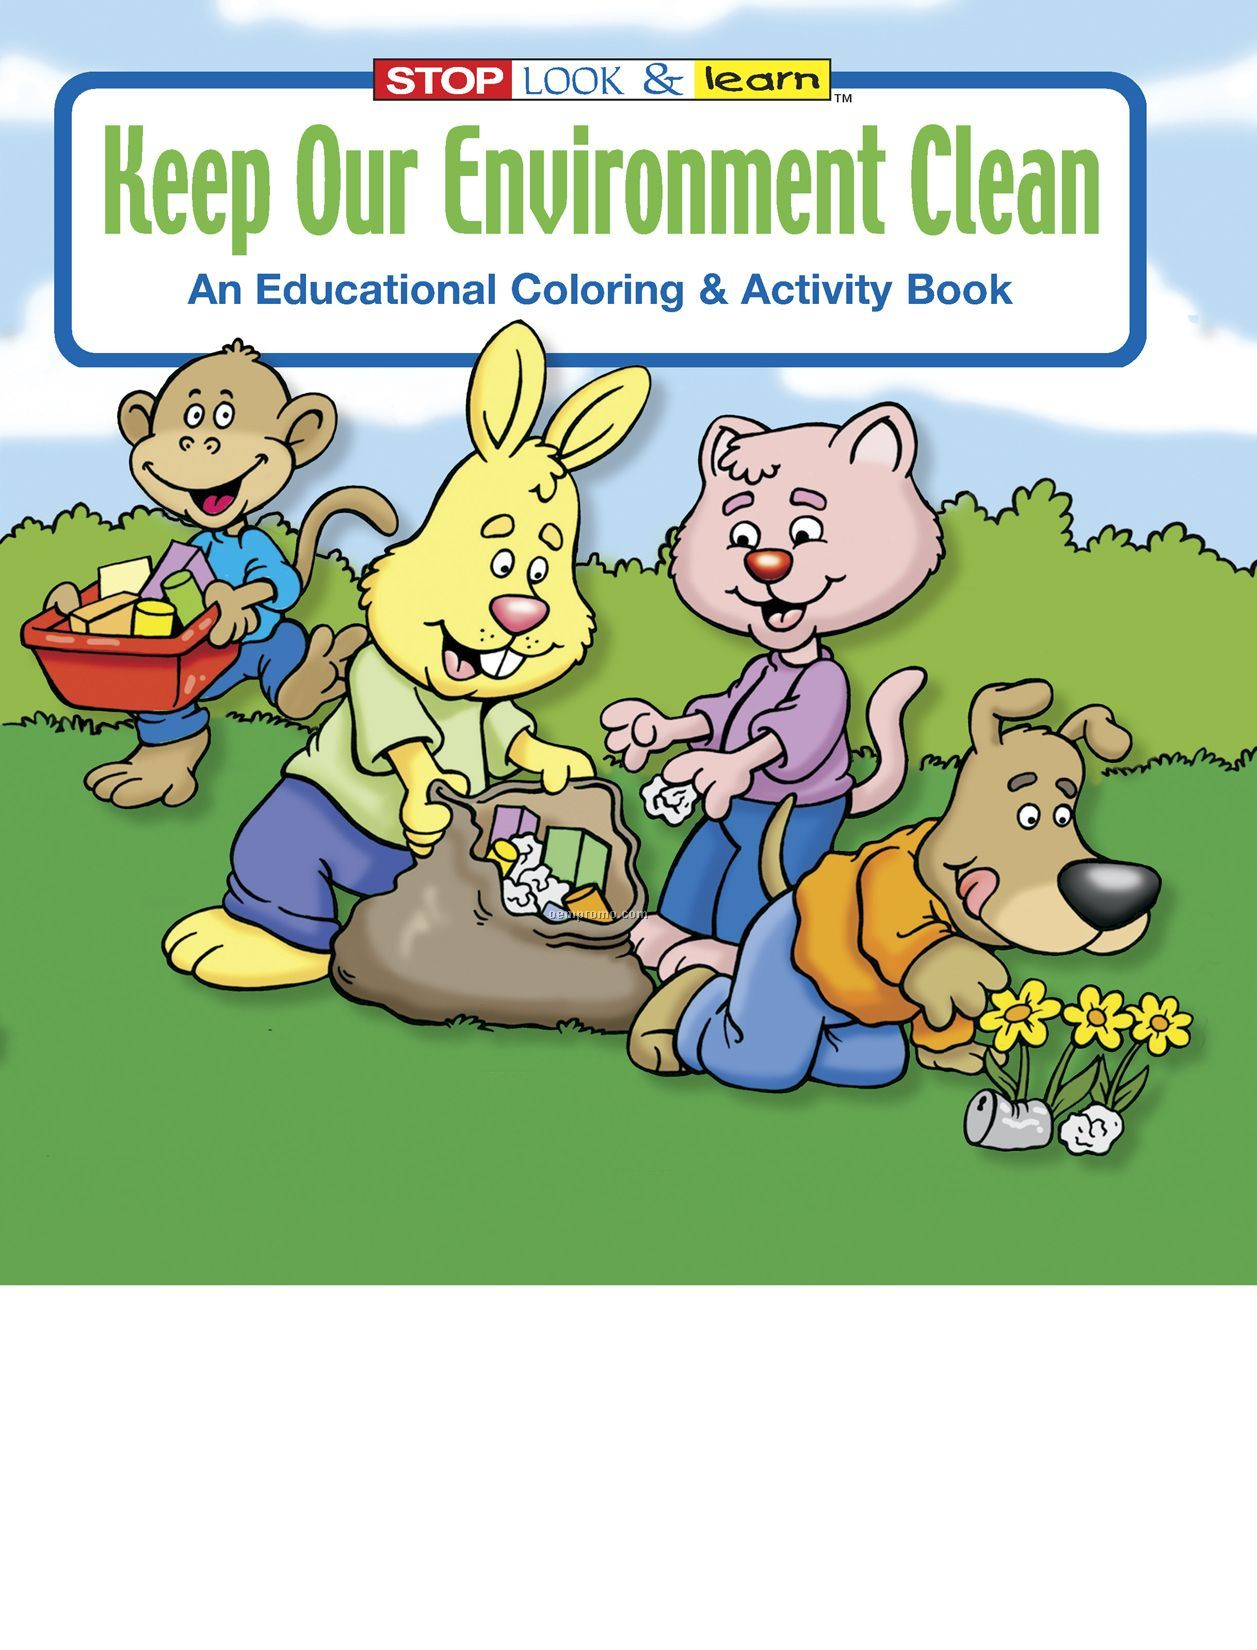 a clean and healthy environment essay How to keep our environment clean essaychallenging job in a clean and healthy environment is part and parcel of the wealth and quality of life that we desire for ourselves now and for our children in the future.